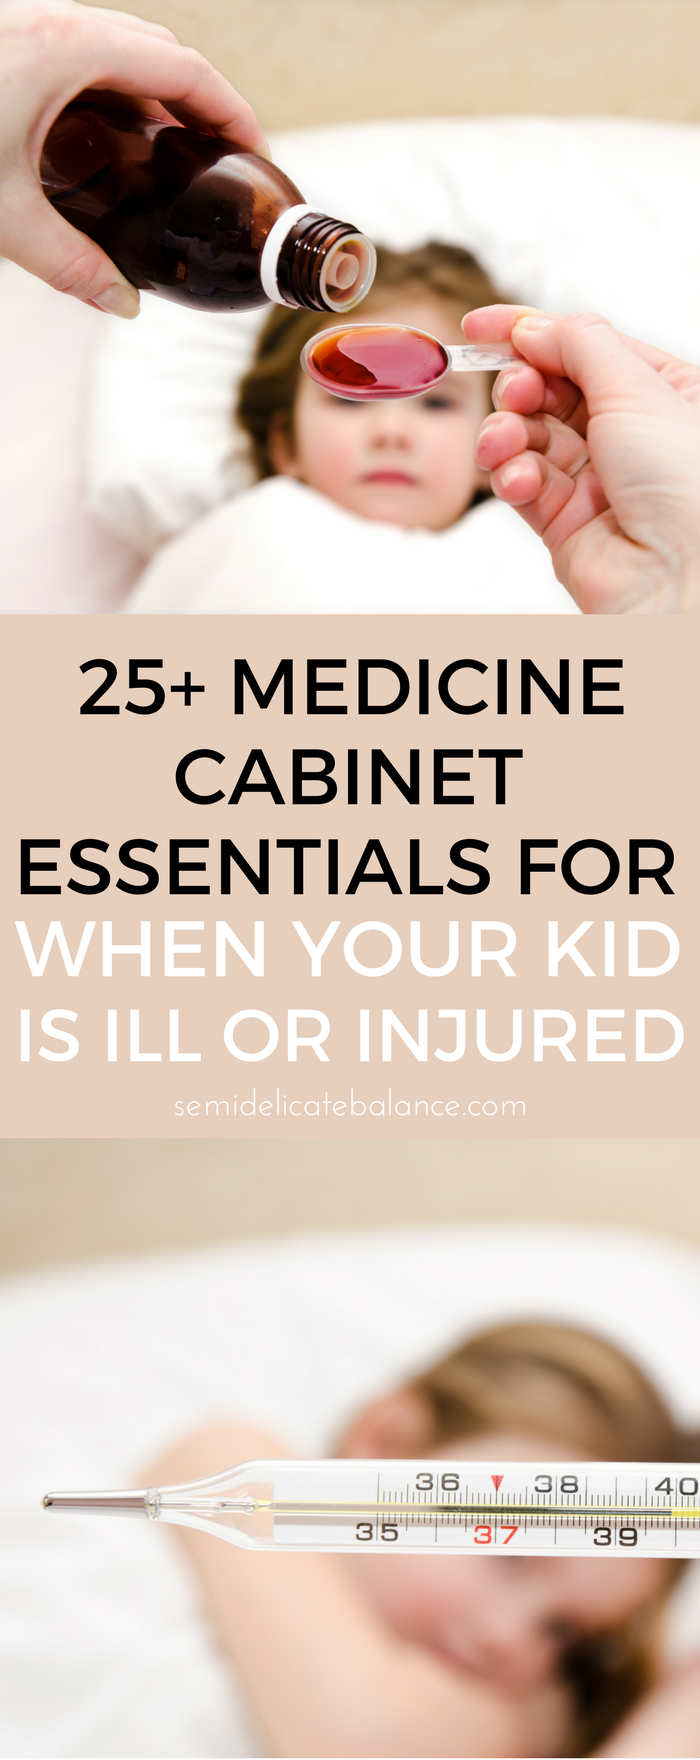 25+ Medicine Cabinet Essentials For When Your Child Gets Sick or Injured